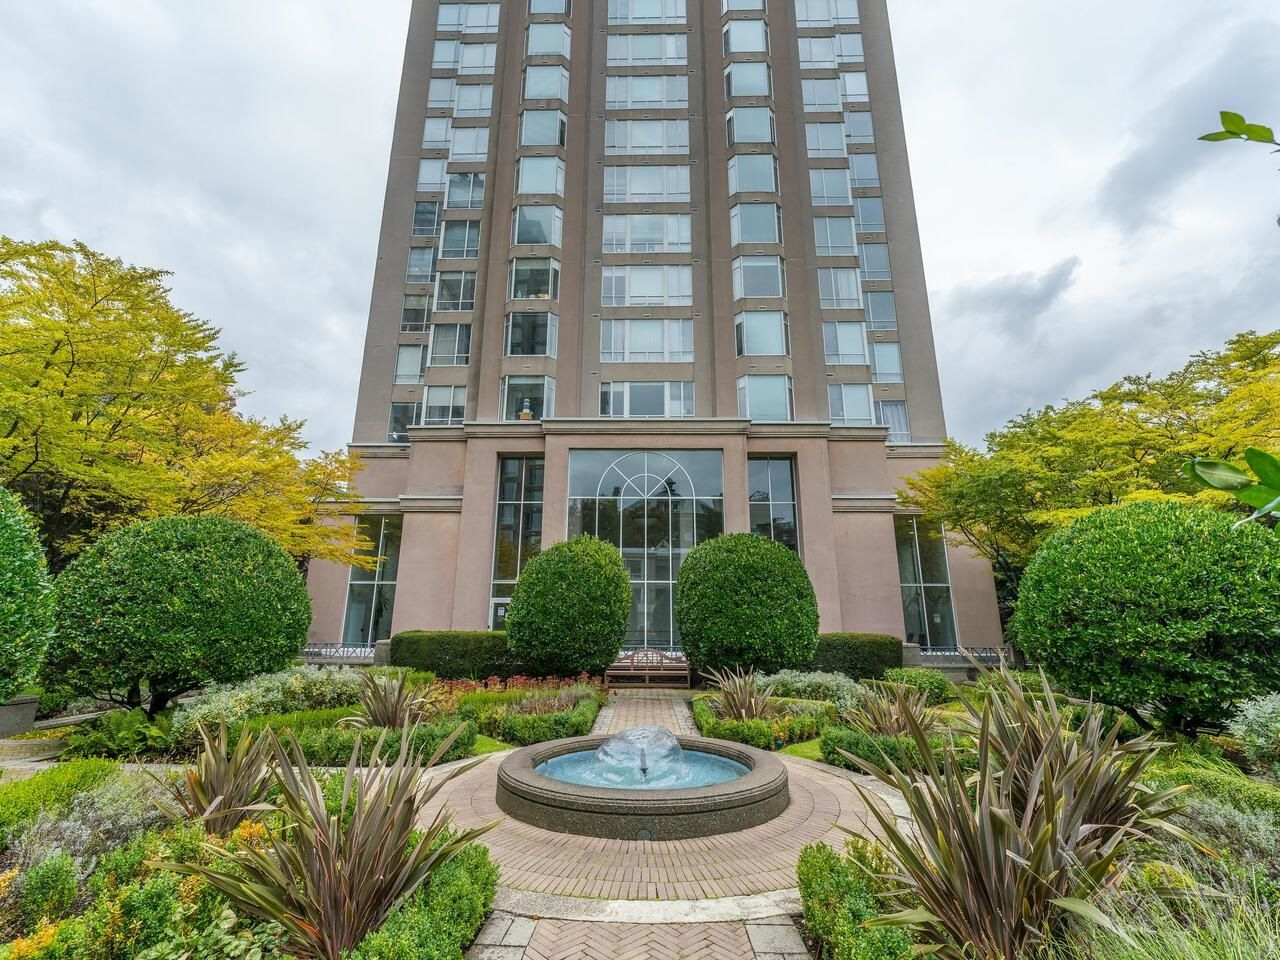 """Main Photo: 107 2628 ASH Street in Vancouver: Fairview VW Condo for sale in """"Cambridge Gardens"""" (Vancouver West)  : MLS®# R2626002"""